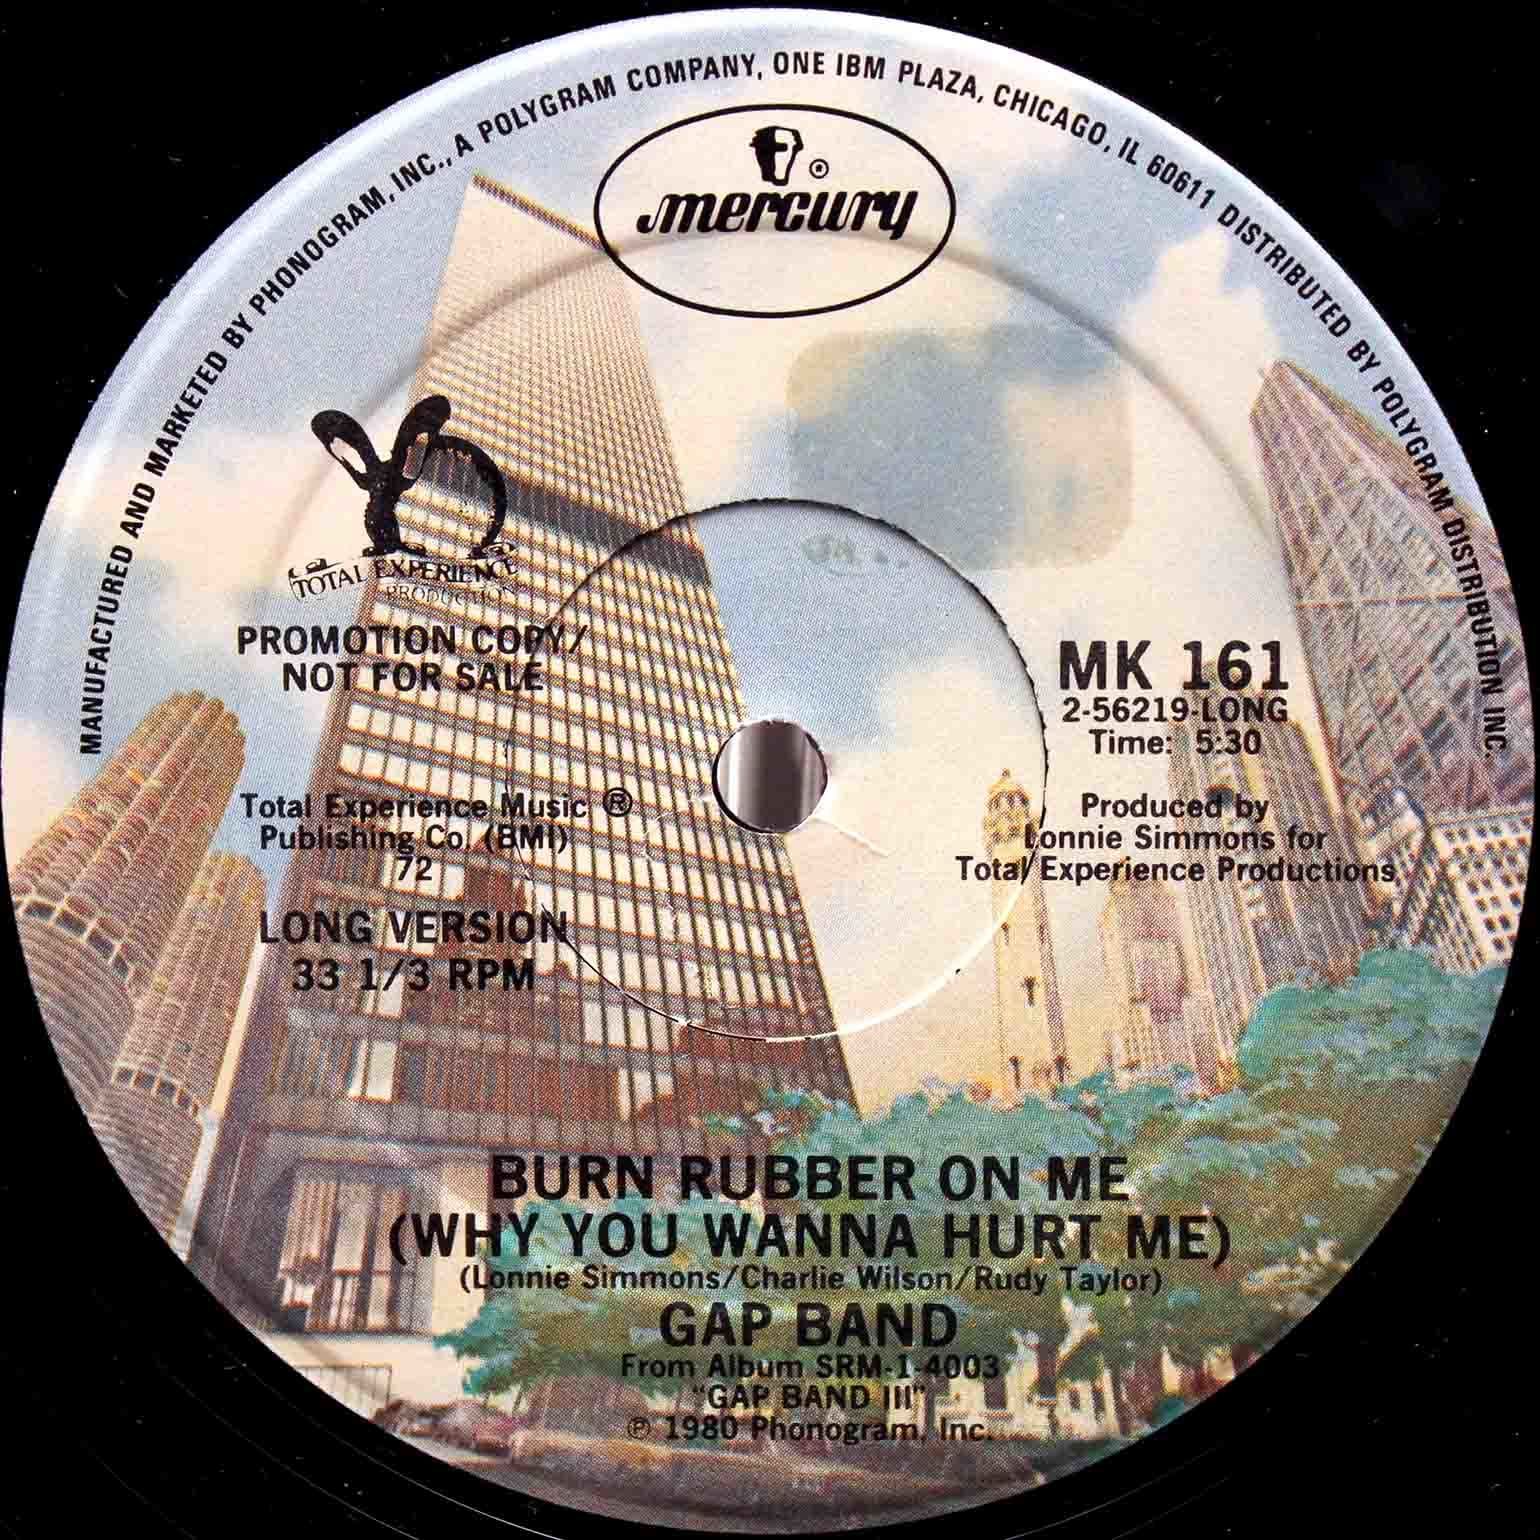 Gap Band - Burn Rubber On Me US Promo 02